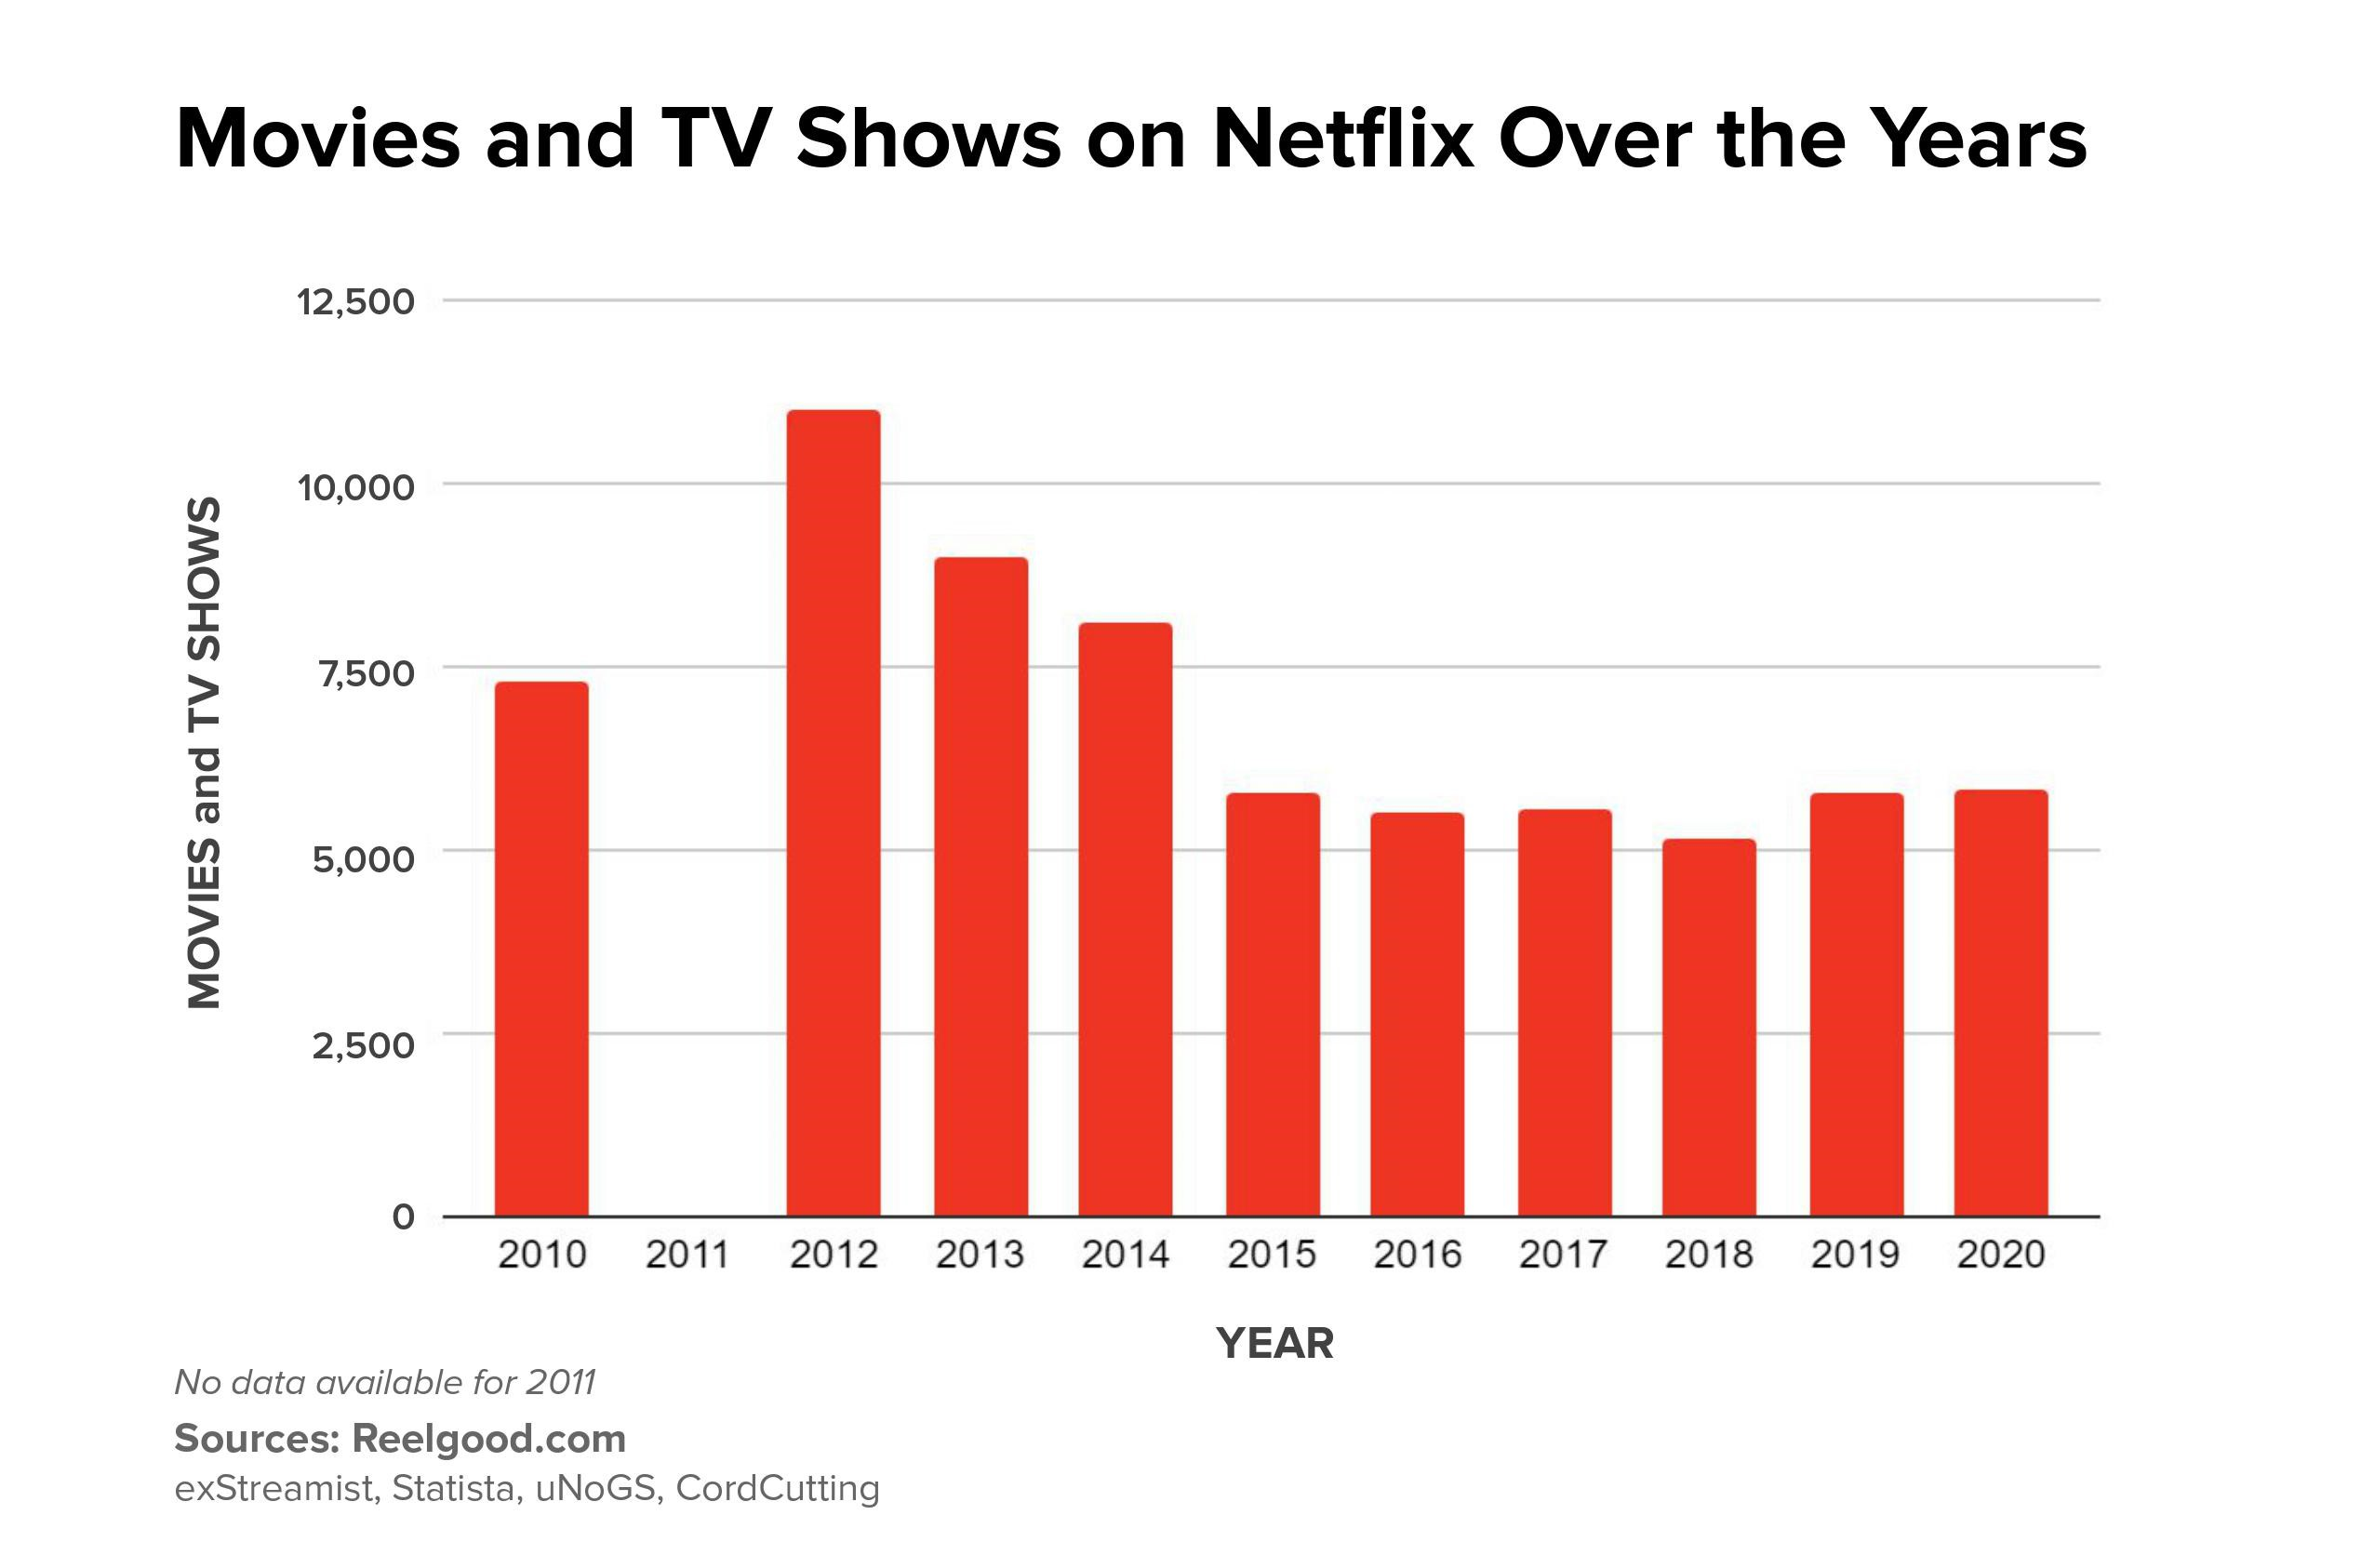 Netflix's catalog of movies and TV shows has shrunk by 47% since 2012